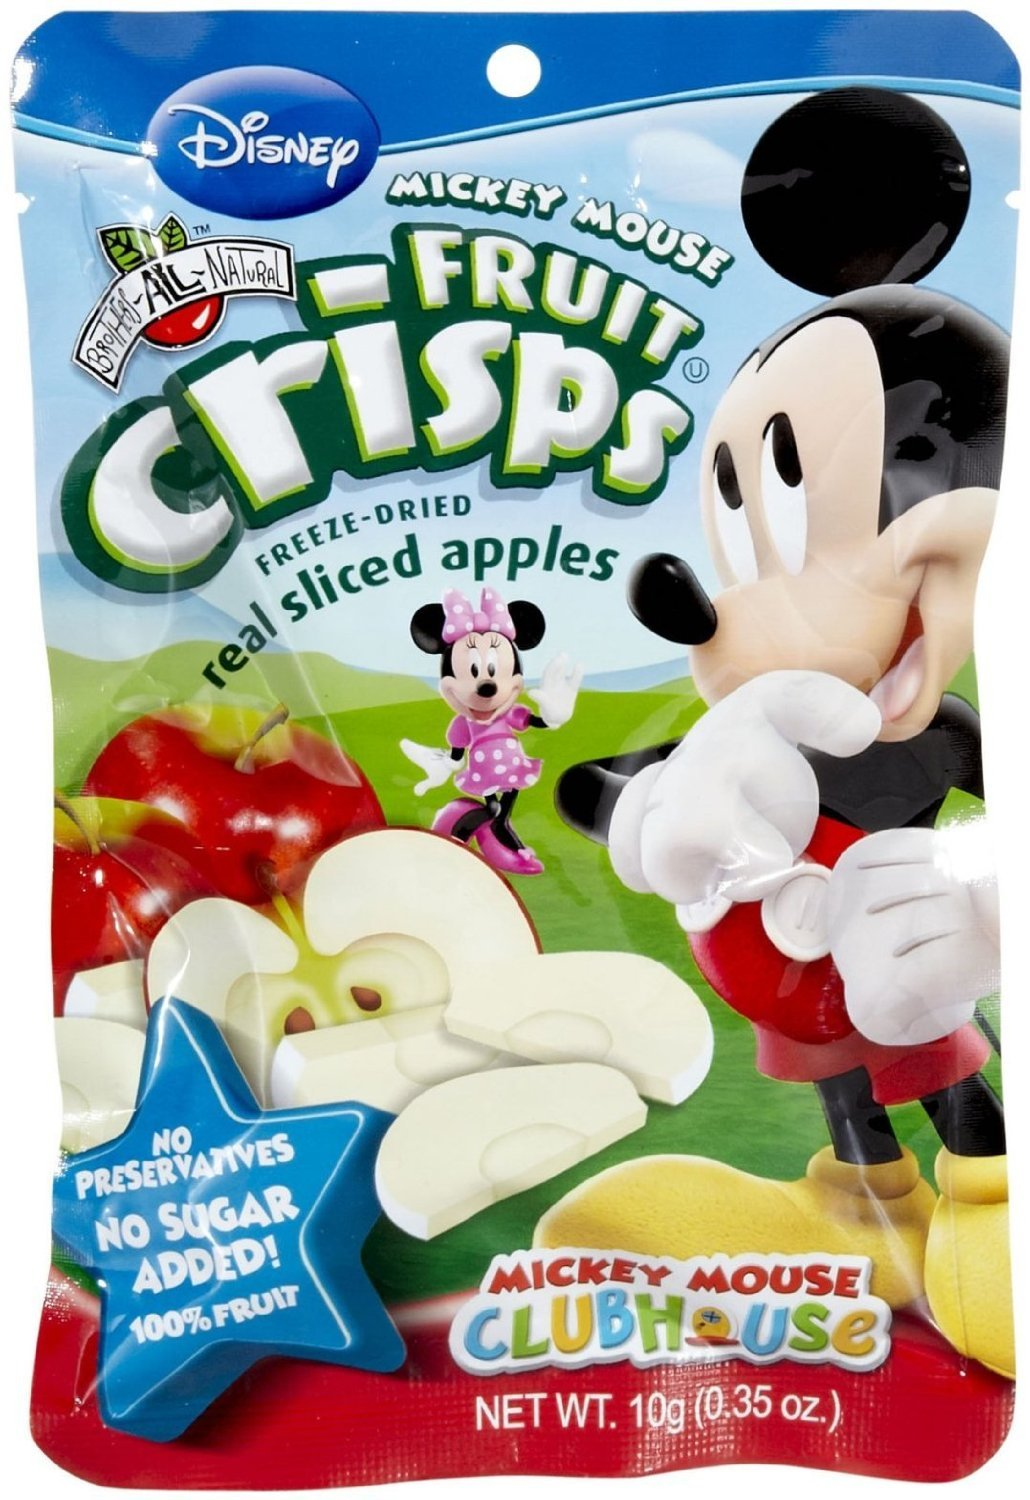 Brothers-ALL-Natural Freeze Dried Fruit Crisps Disney Mickey Mouse Sliced Apples 12 Pack, .35 Oz. Ea. (12 Bags Total) by Brothers